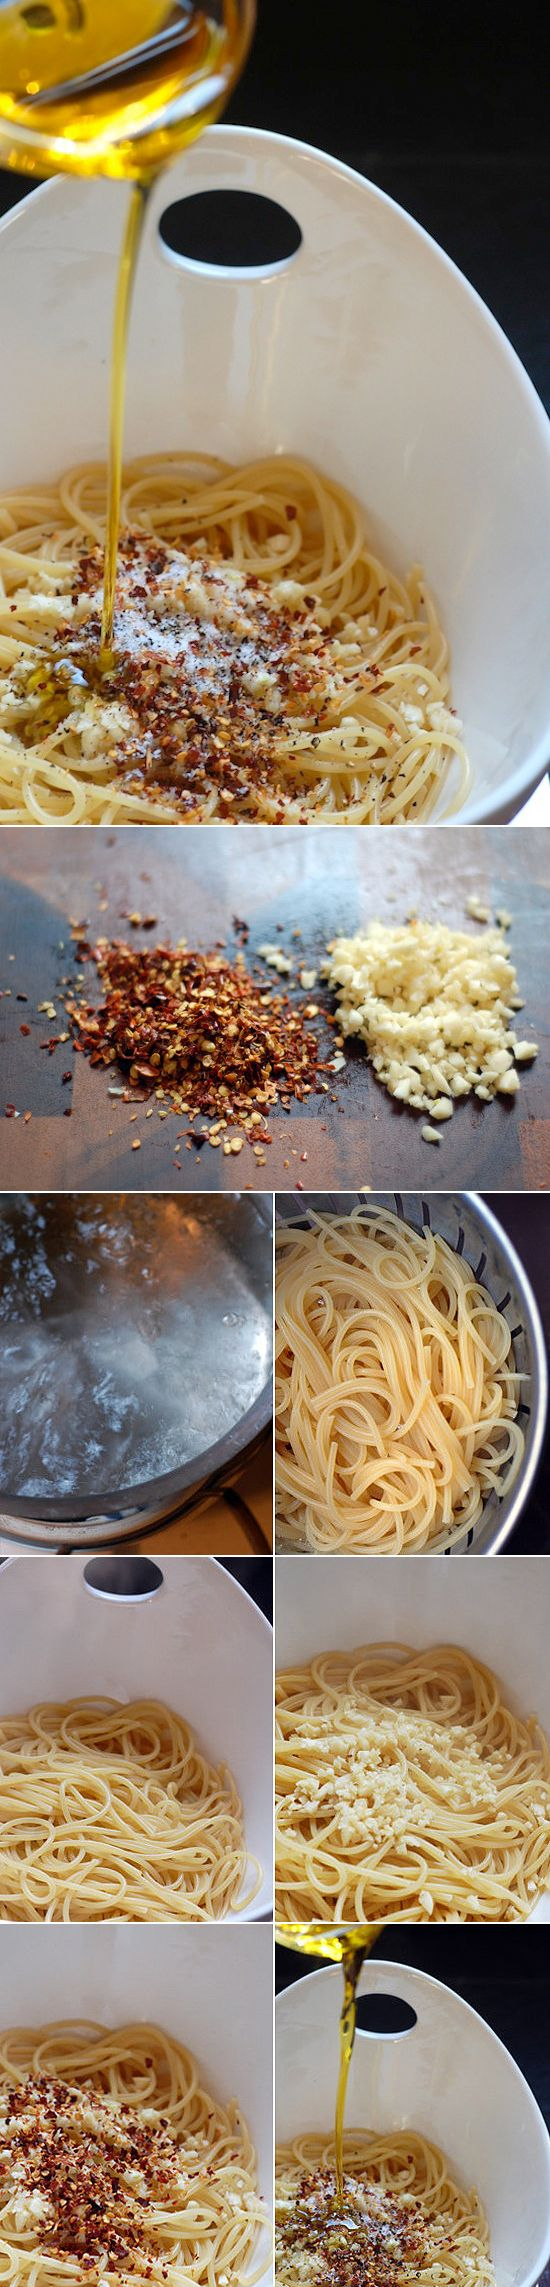 Spaghetti Aglio, Olio, e Peperoncino (Spaghetti with Garlic, Olive Oil, and Chili Flakes)